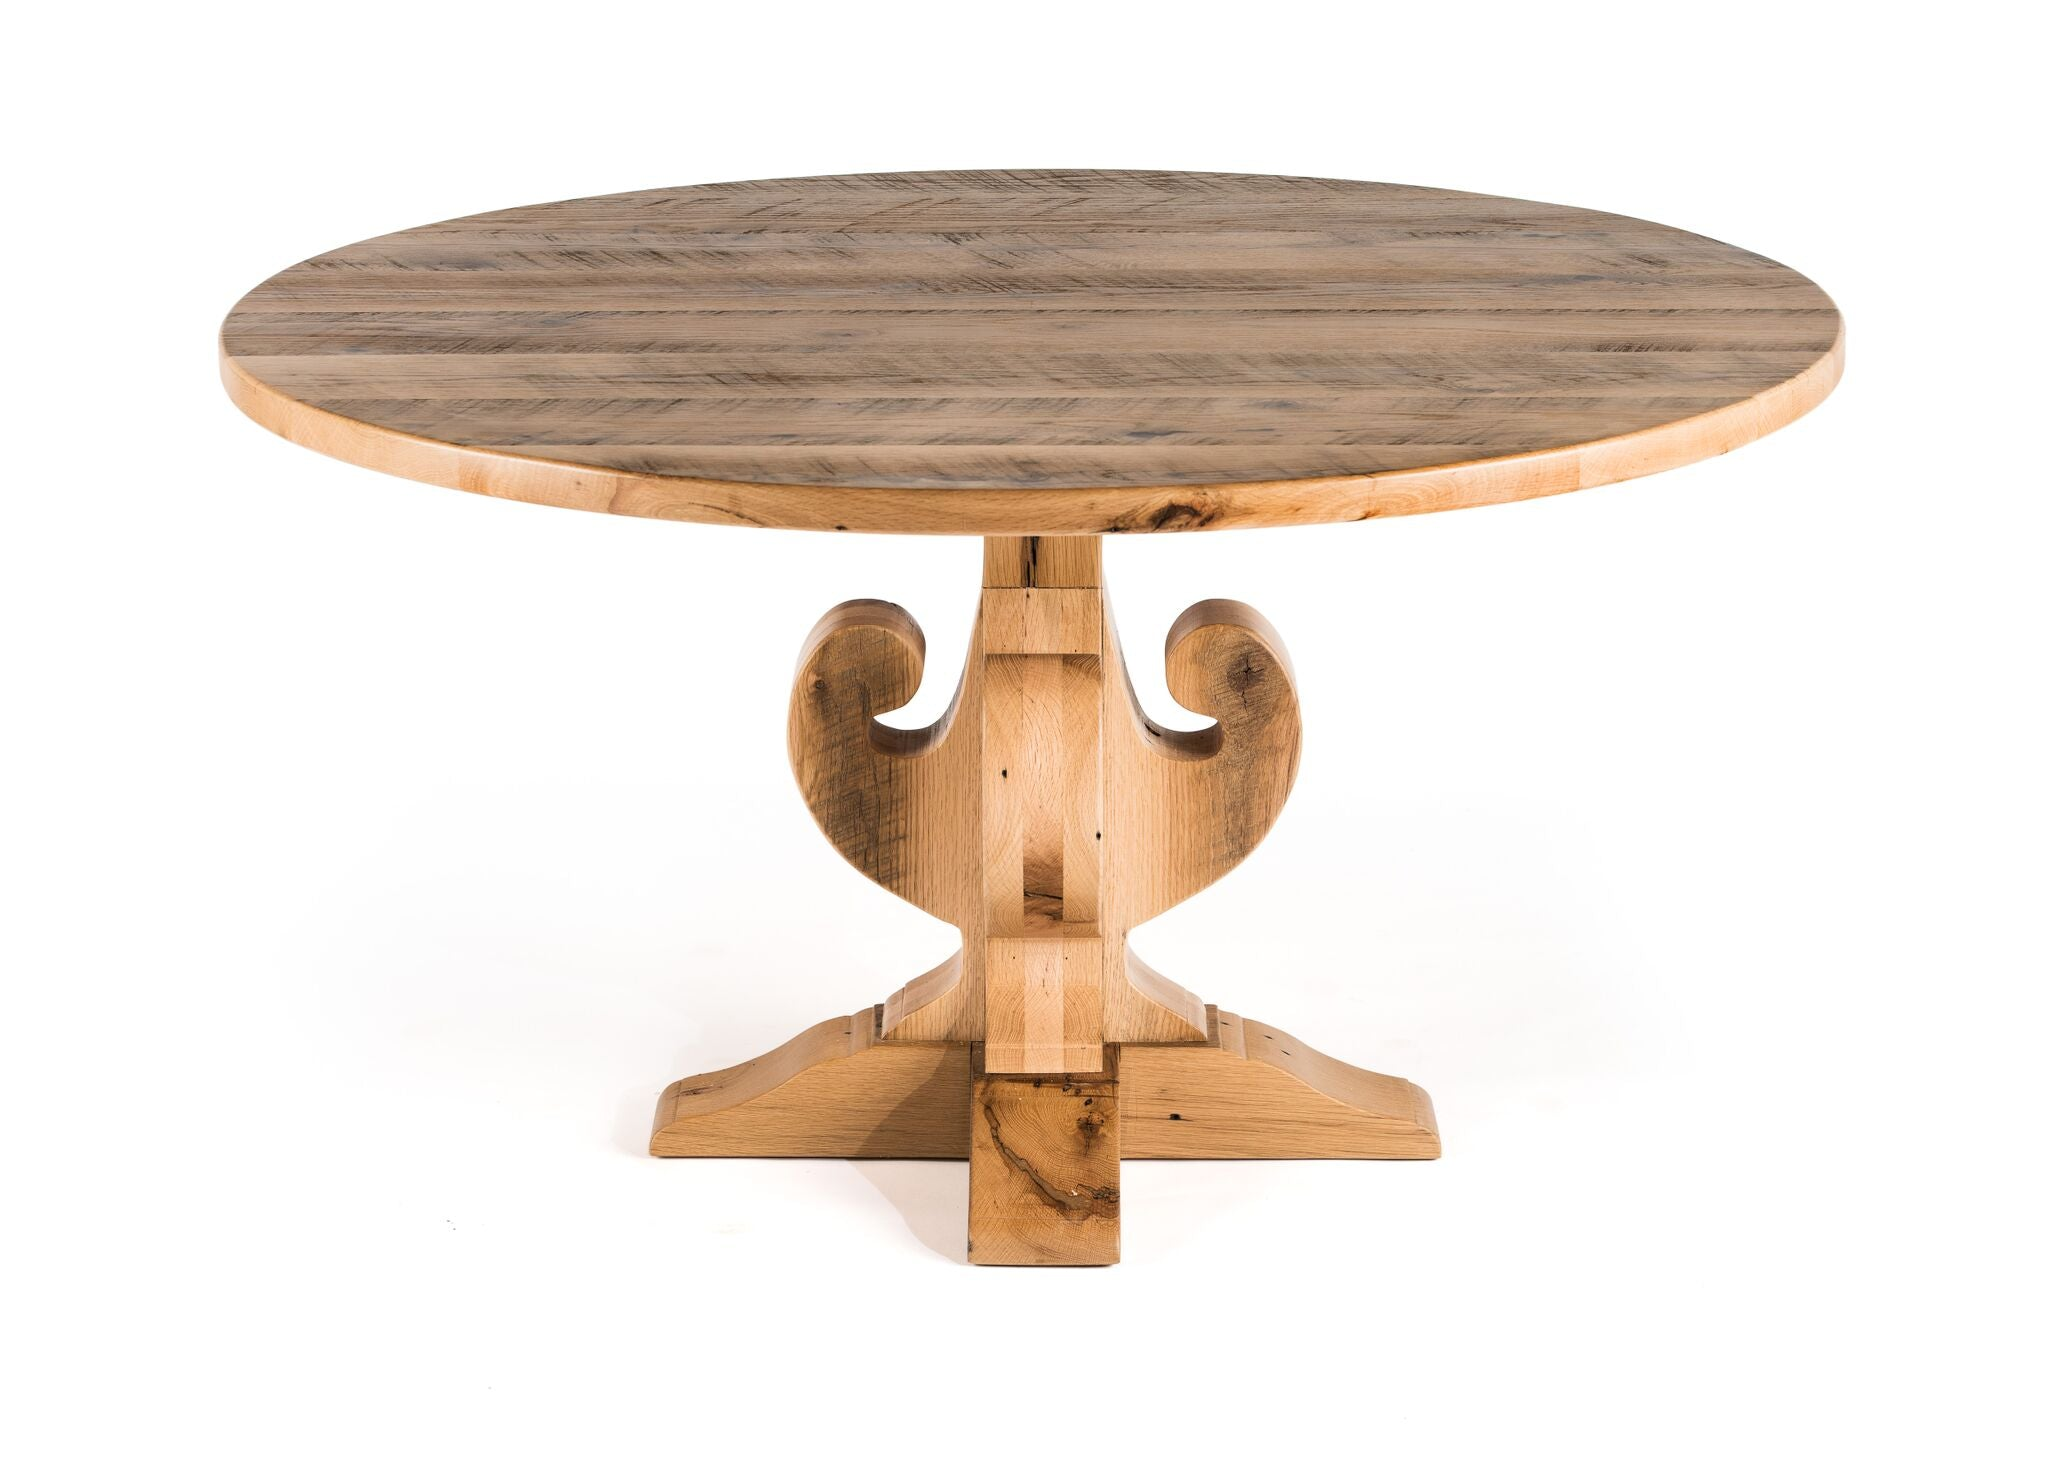 "Round Wood Tables | Farifield Trestle Table | Natural Ash | Natural Ash | Diameter 42 |  Height 30 | 1.5"" Standard"